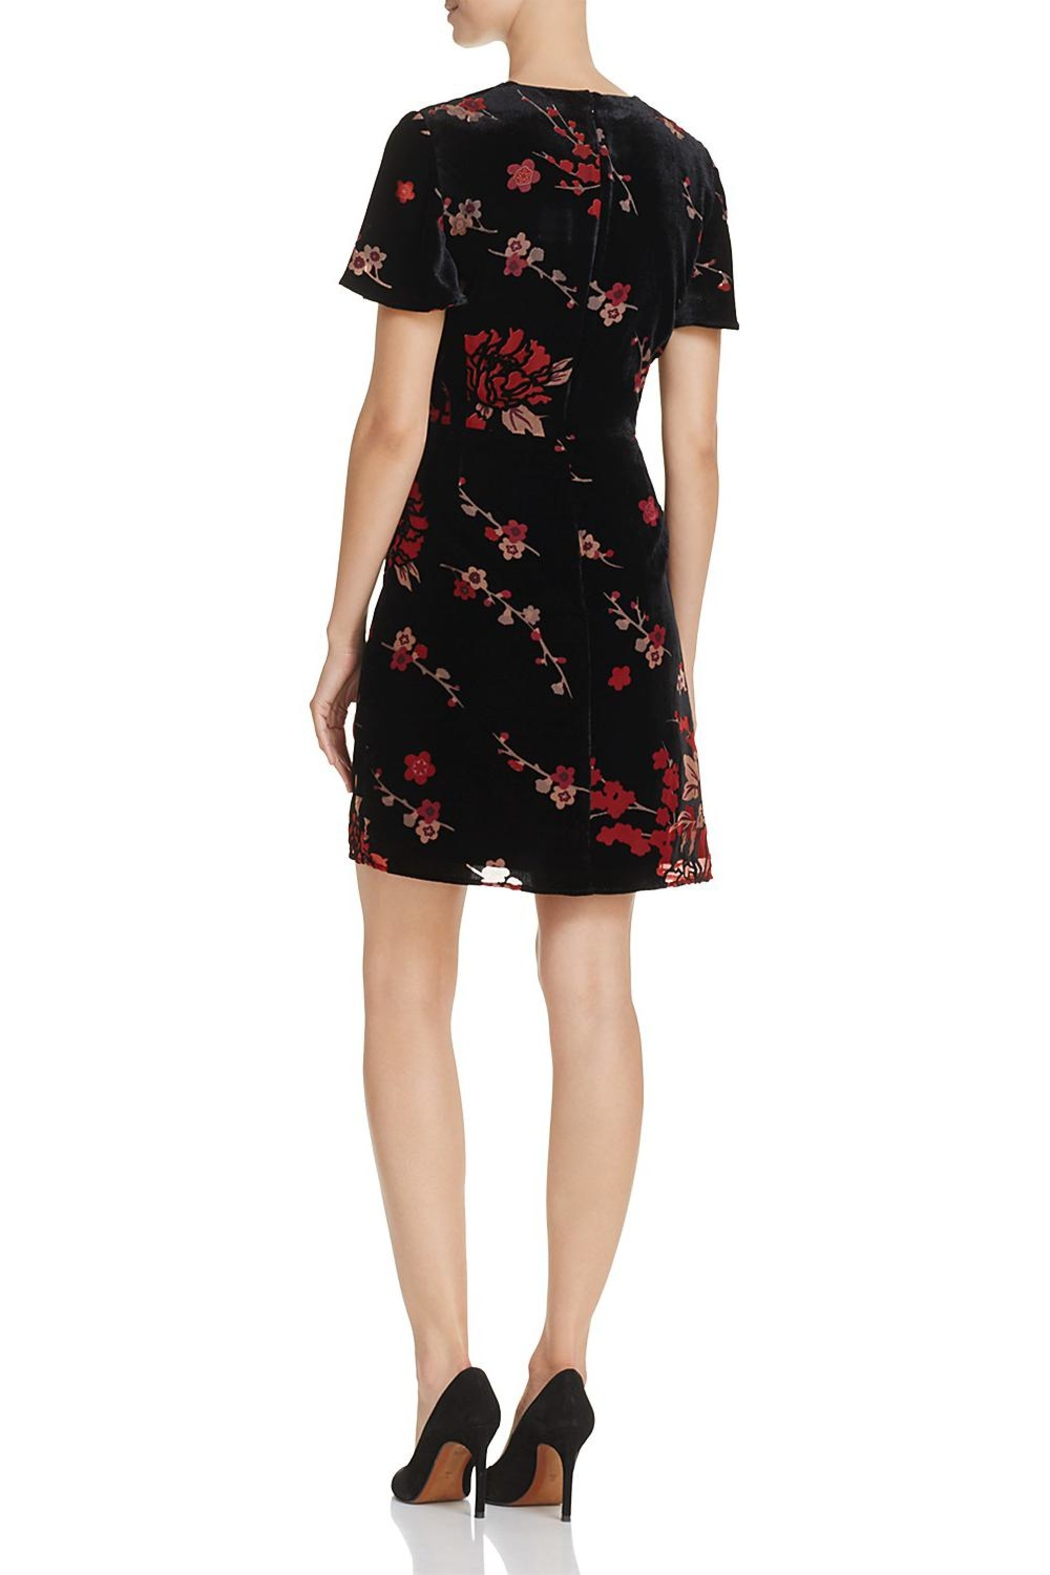 French Connection Burnout Floral Mini-Dress - Front Full Image